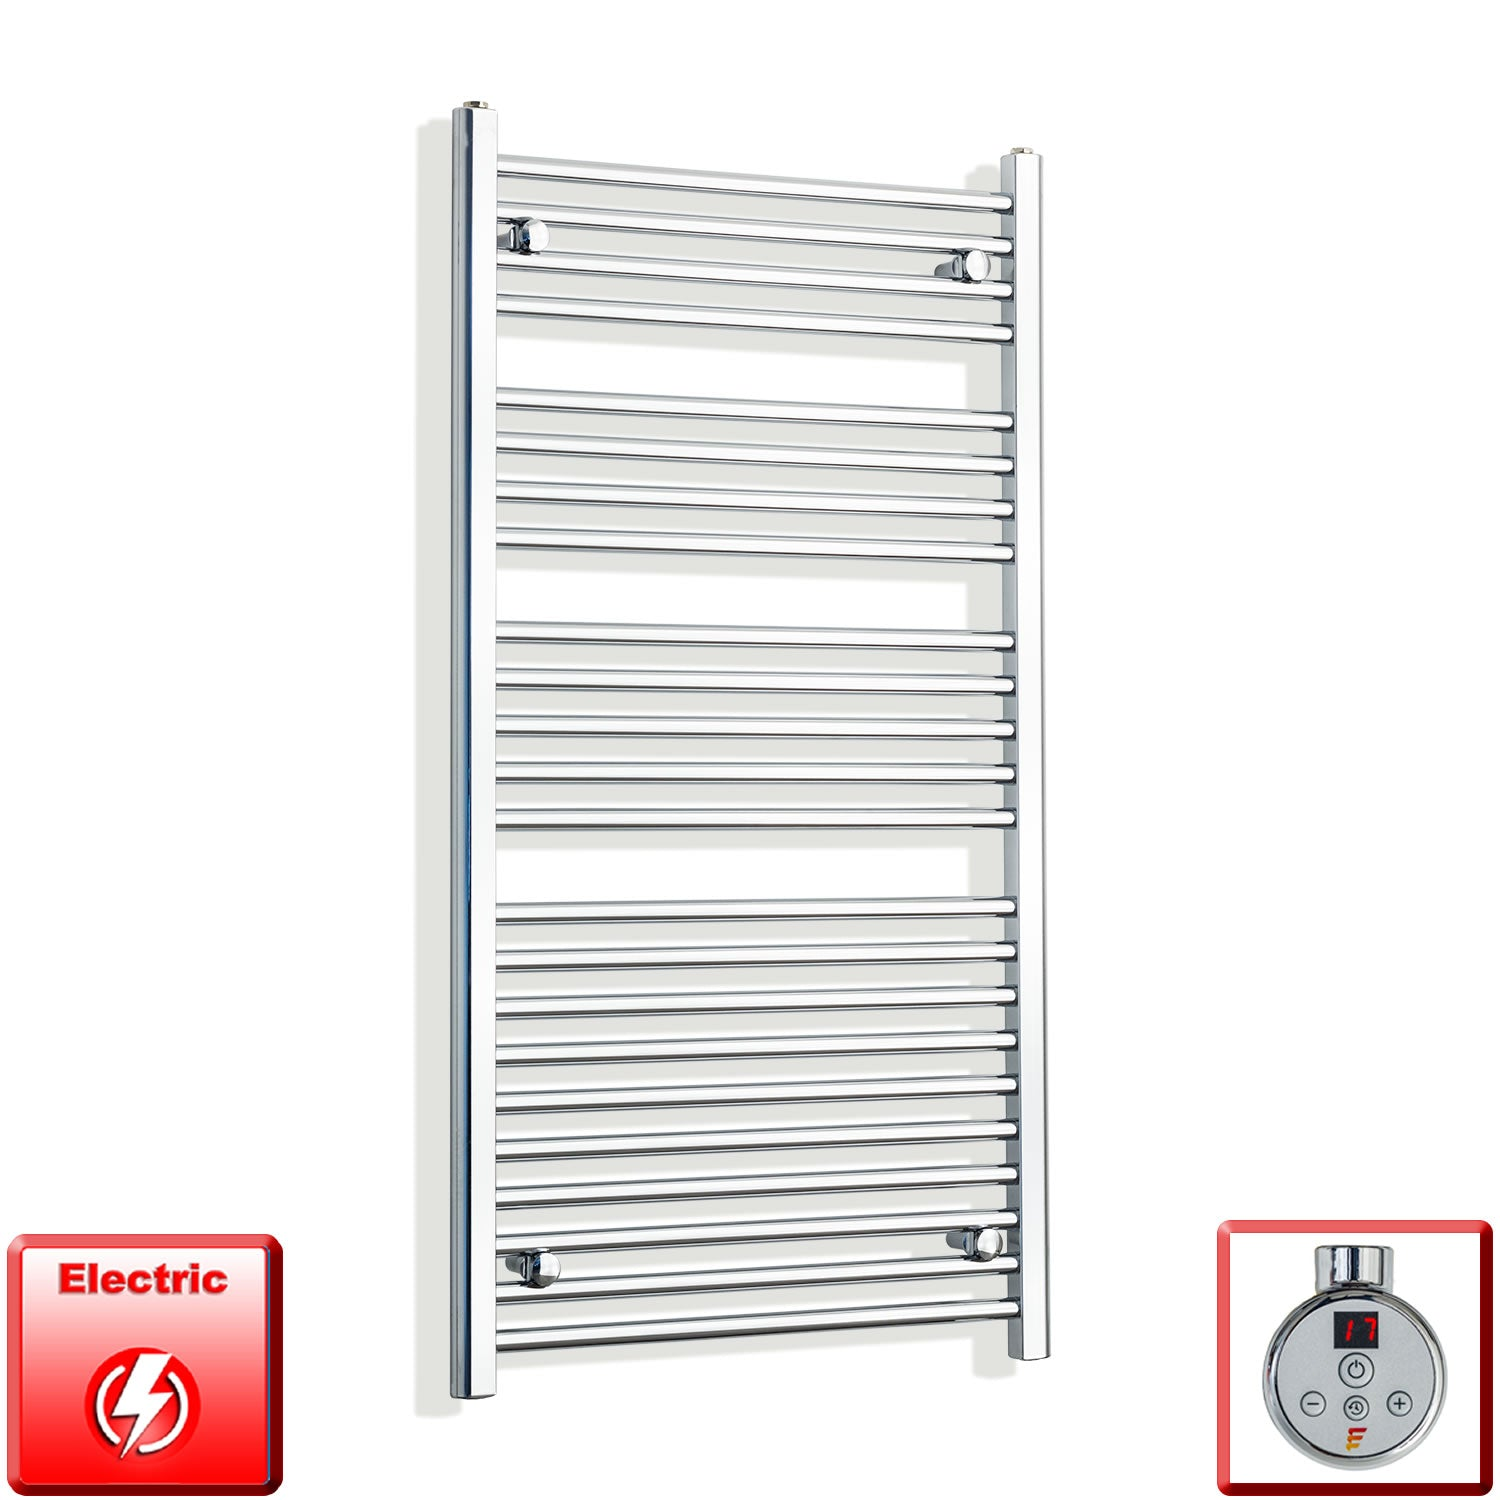 700mm Wide 1200mm High Pre-Filled Chrome Electric Towel Rail Radiator With Thermostatic DIGI Element